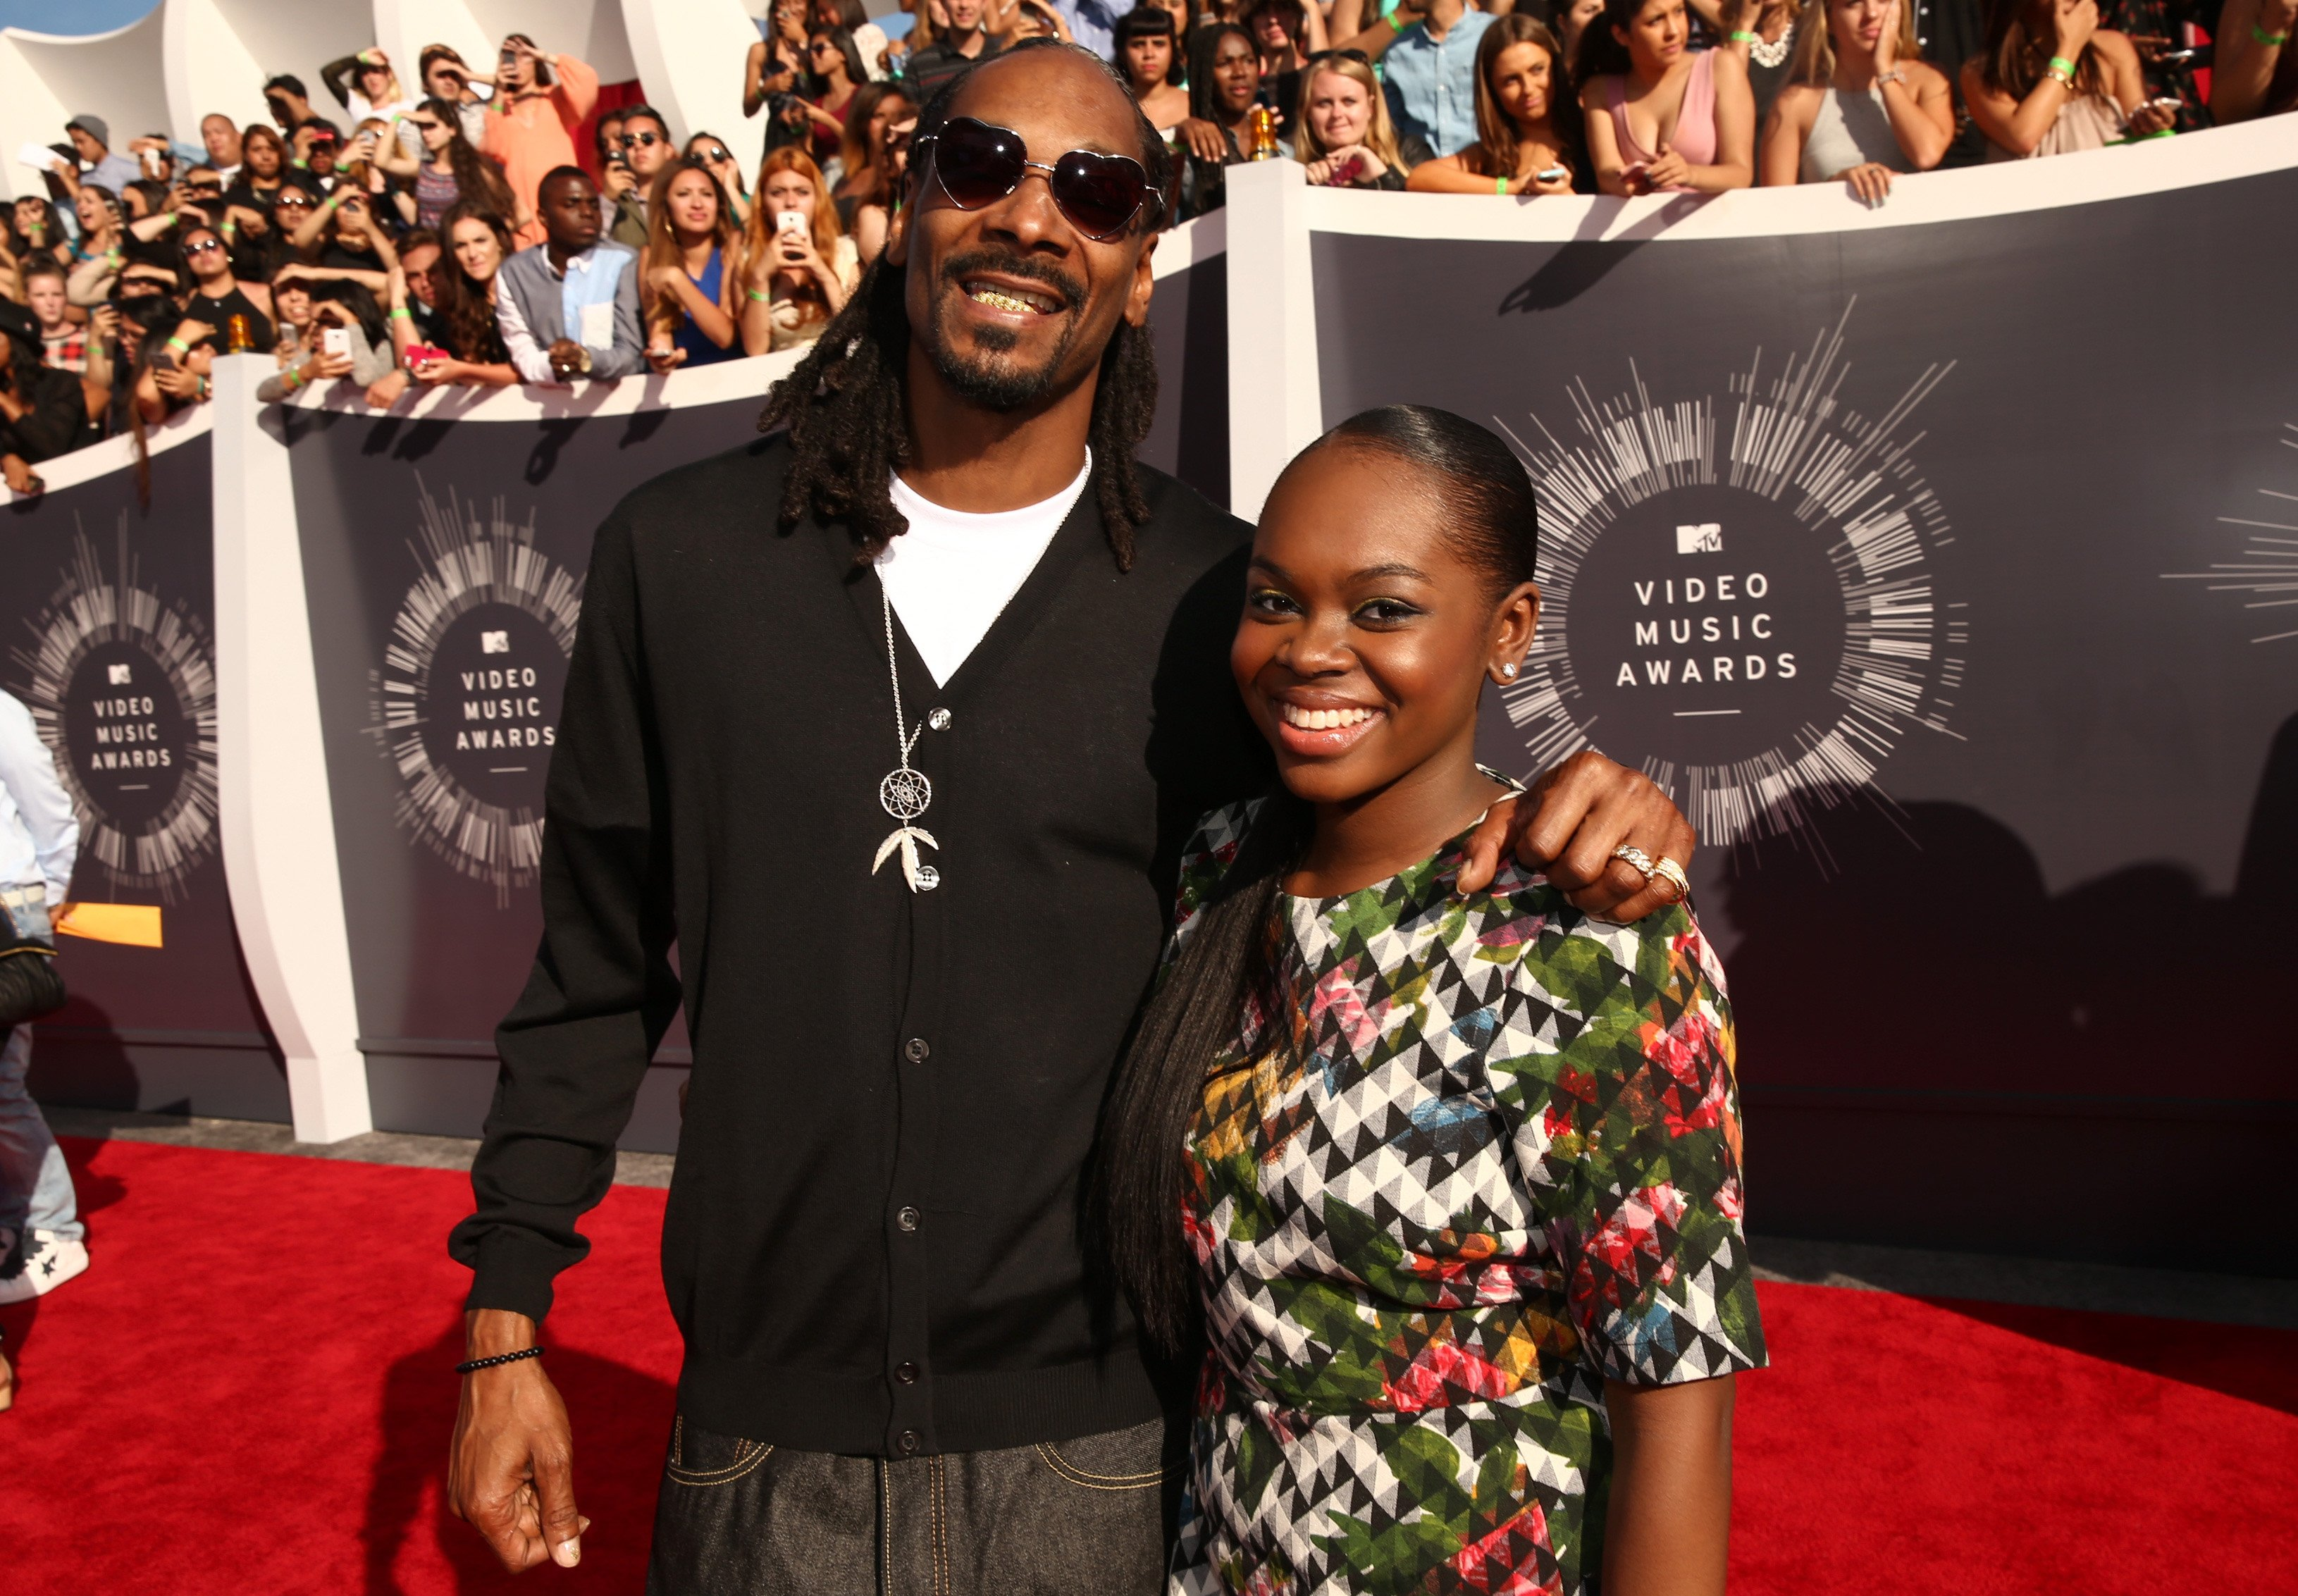 Snoop Dogg and Cori Broadus attend the 2014 MTV Video Music Awards at The Forum on August 24, 2014 in Inglewood, California. | Photo: GettyImages